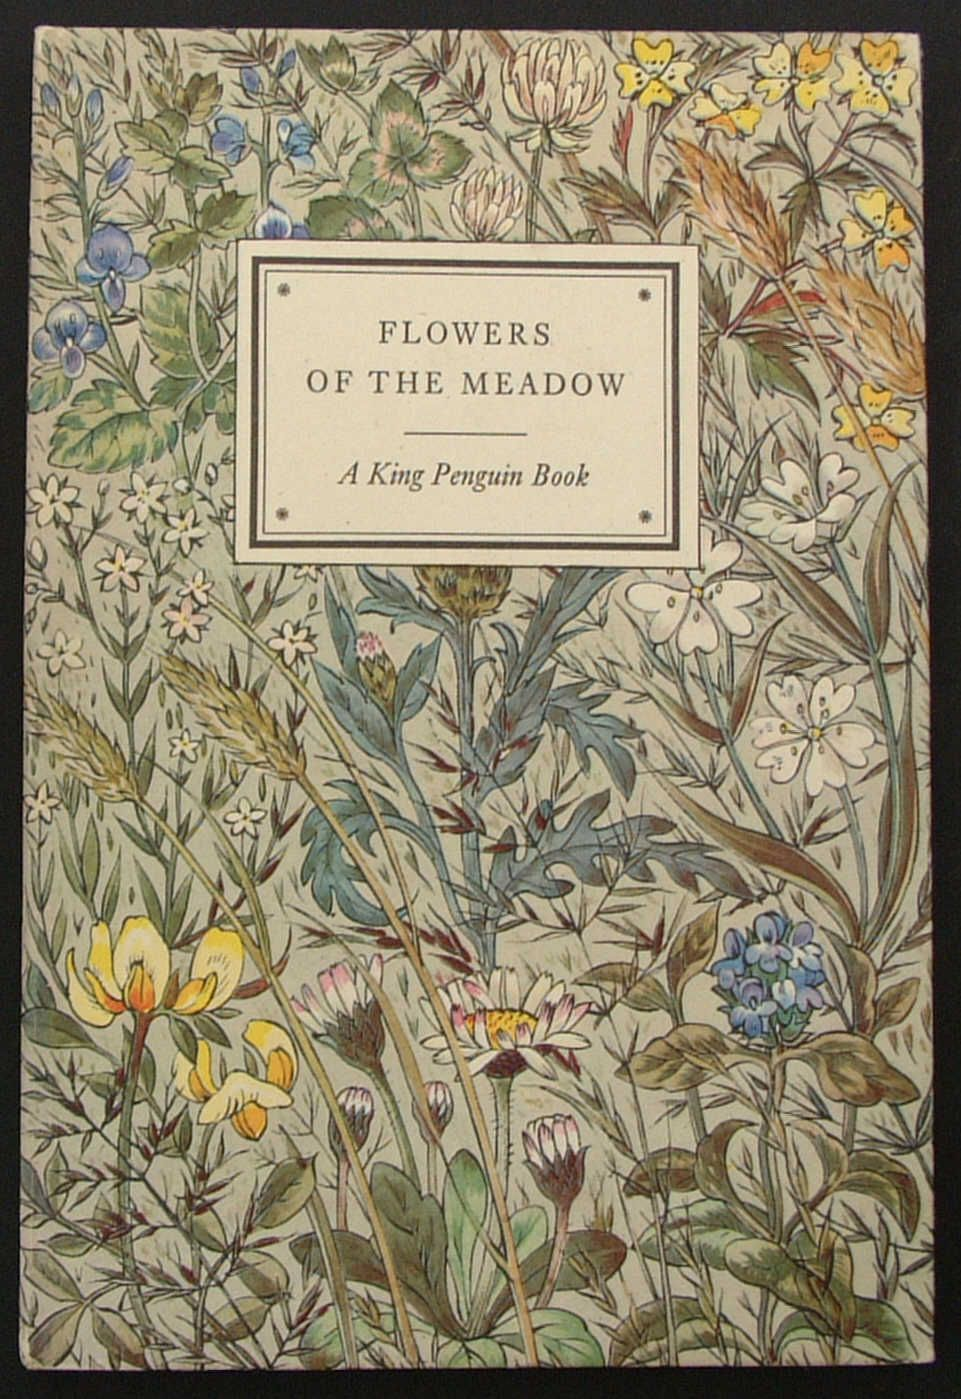 King Penguin 53 • FLOWERS OF THE MEADOW • Author: Geoffrey Grigson • Cover Design: Robin Tanner • Date Published: June 1950 • #NEED